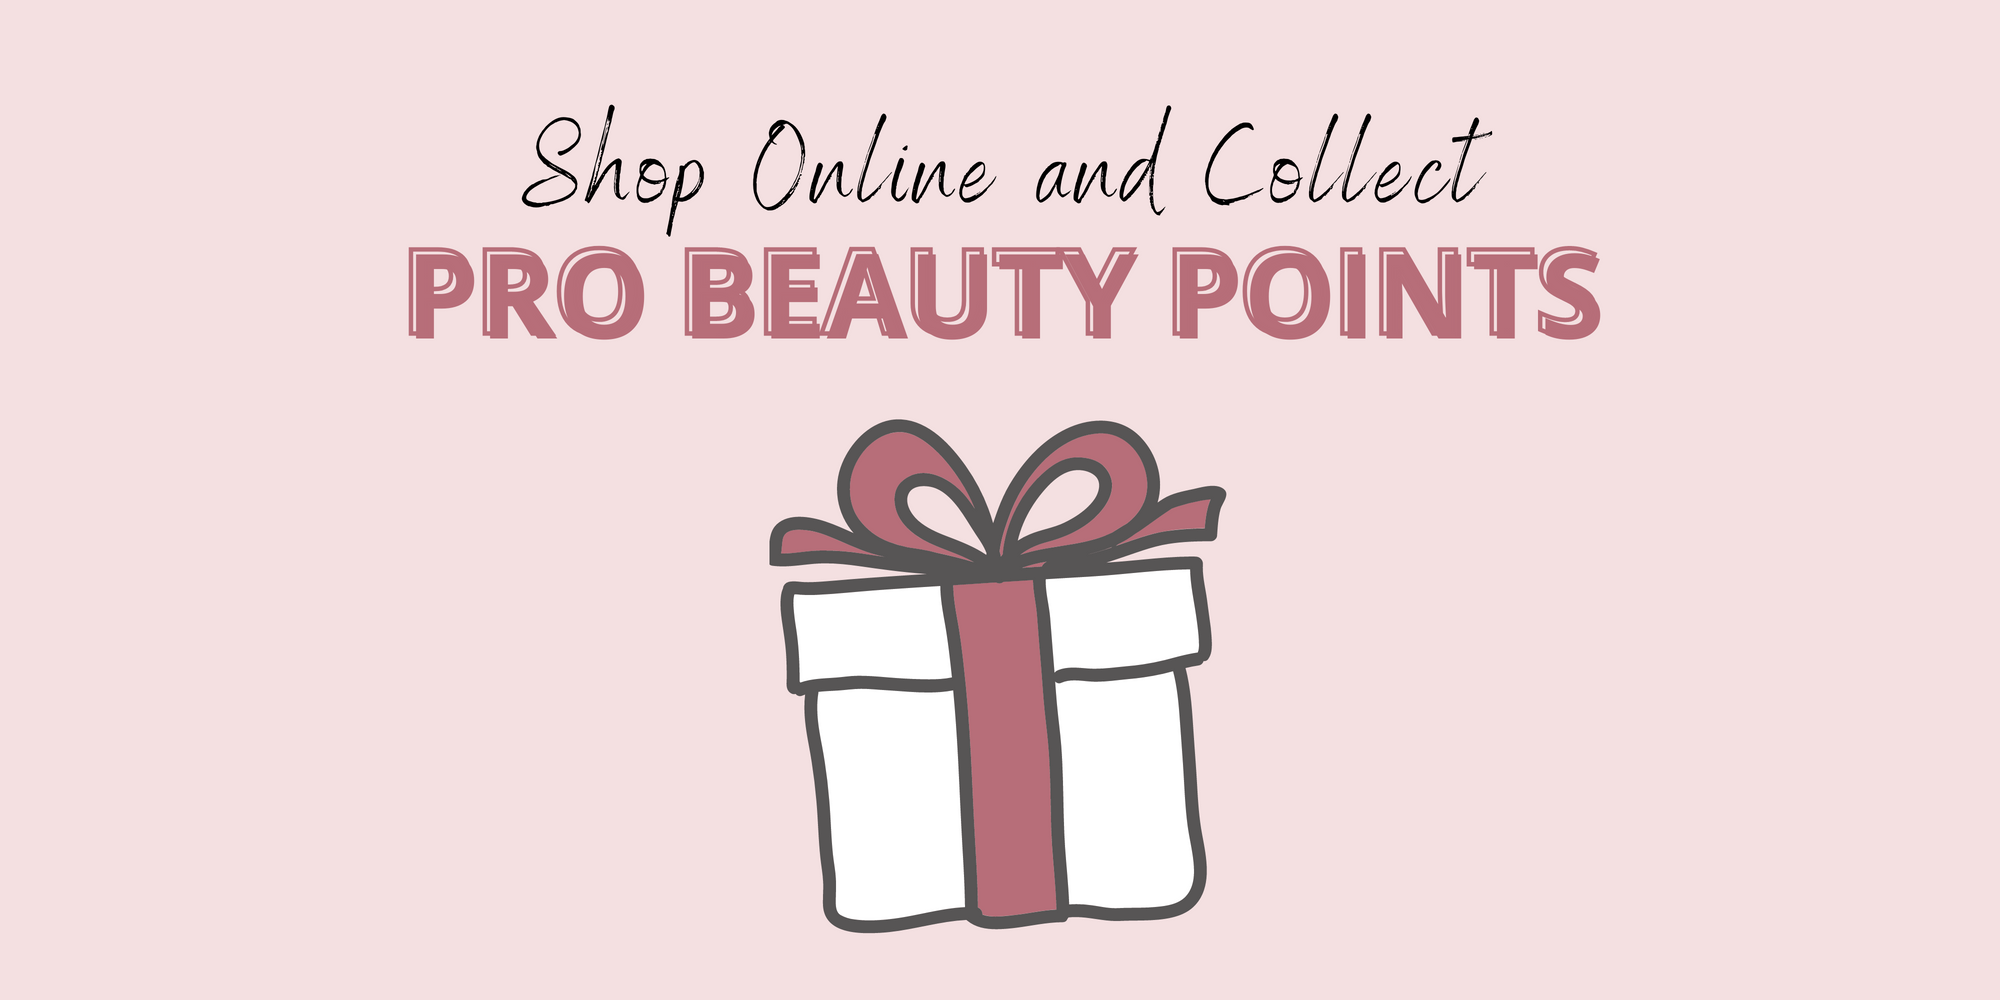 Collect Pro Beauty Points Every Time You Shop!